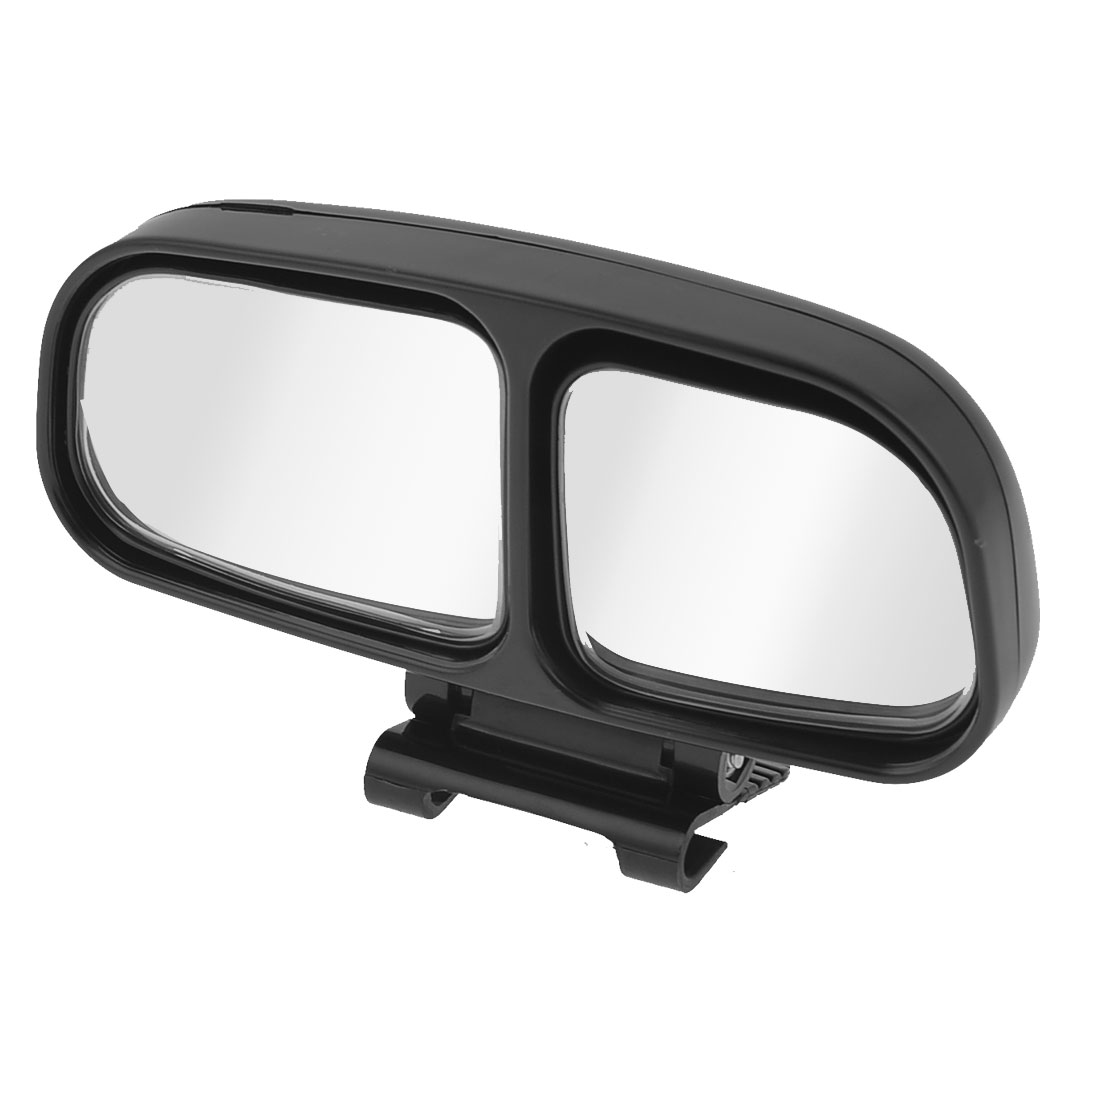 Black Frame Left Side Rear View Blind Spot Auxiliary Mirror for Truck Car